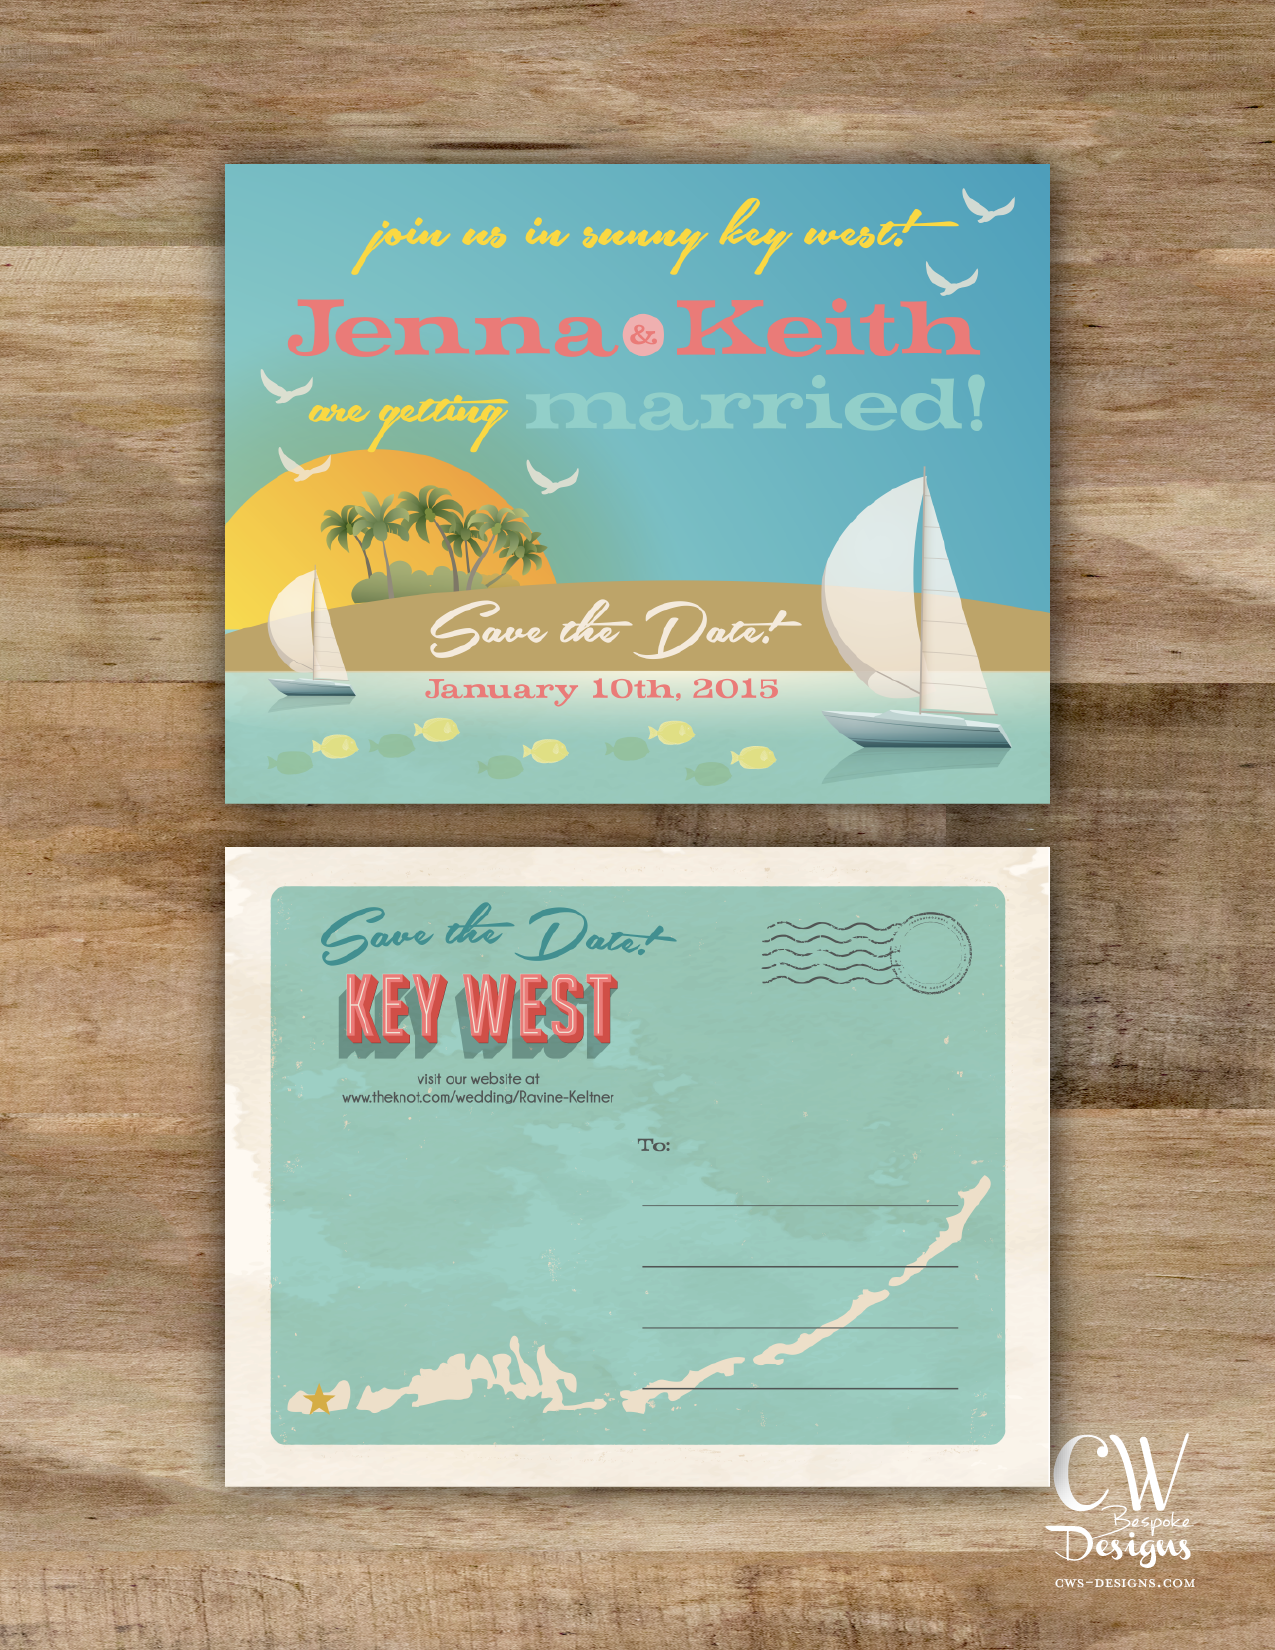 Key West Save the Date-01.png